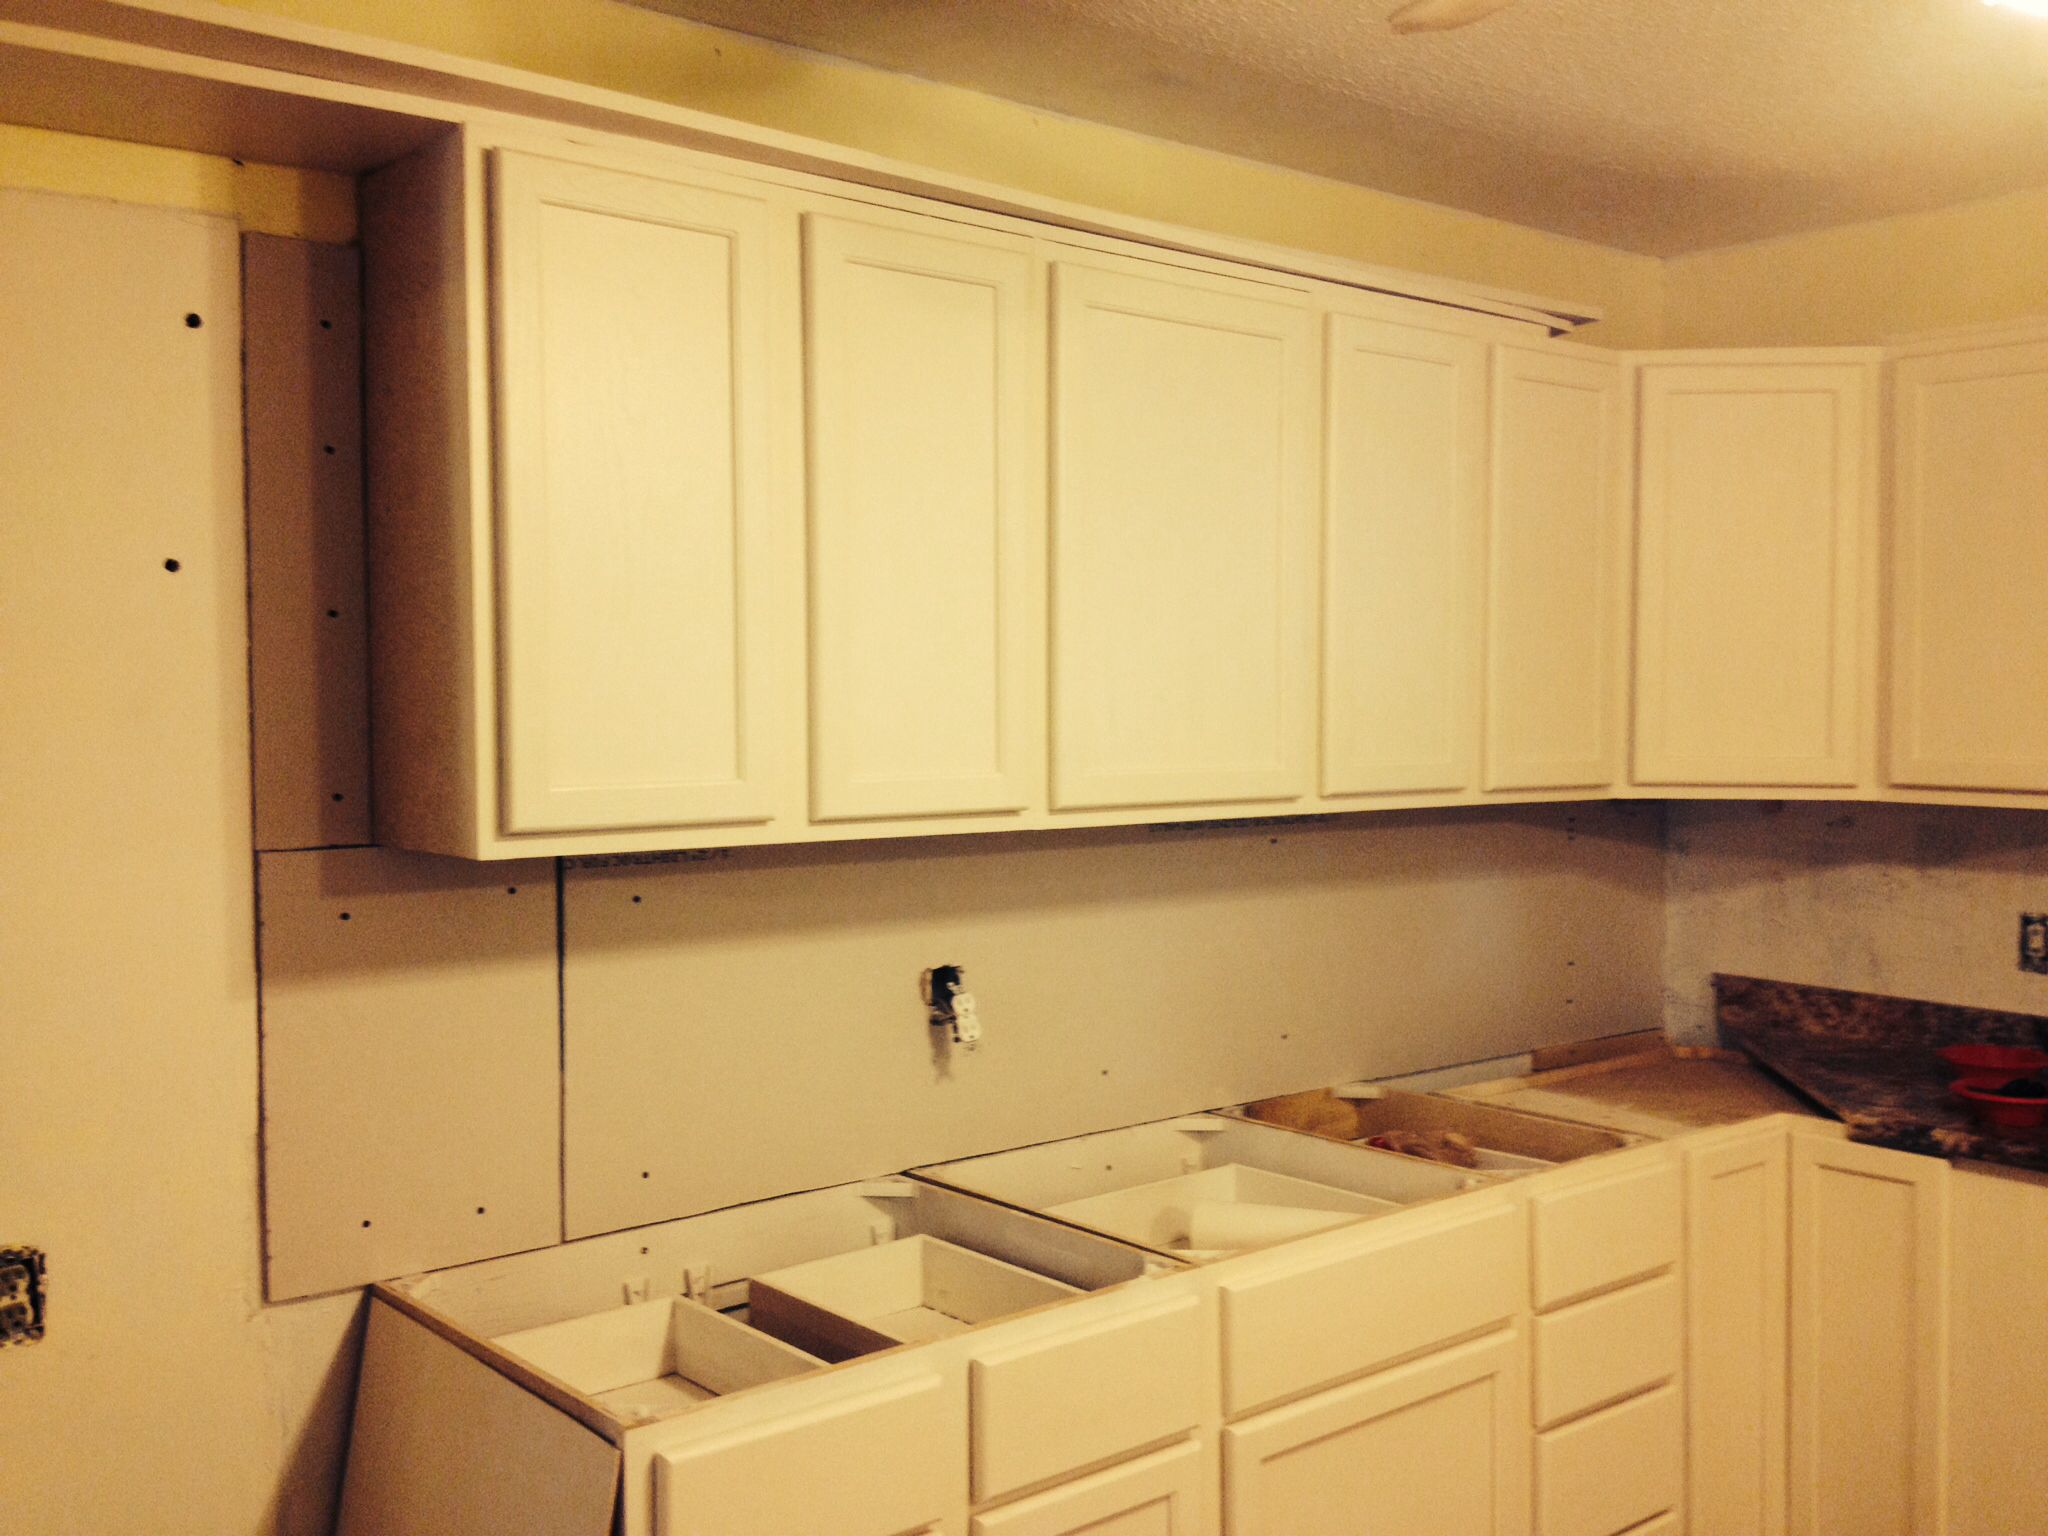 Leveling The Wall With 1 2 Sheetrock Kitchen Cabinets Kitchen Home Decor